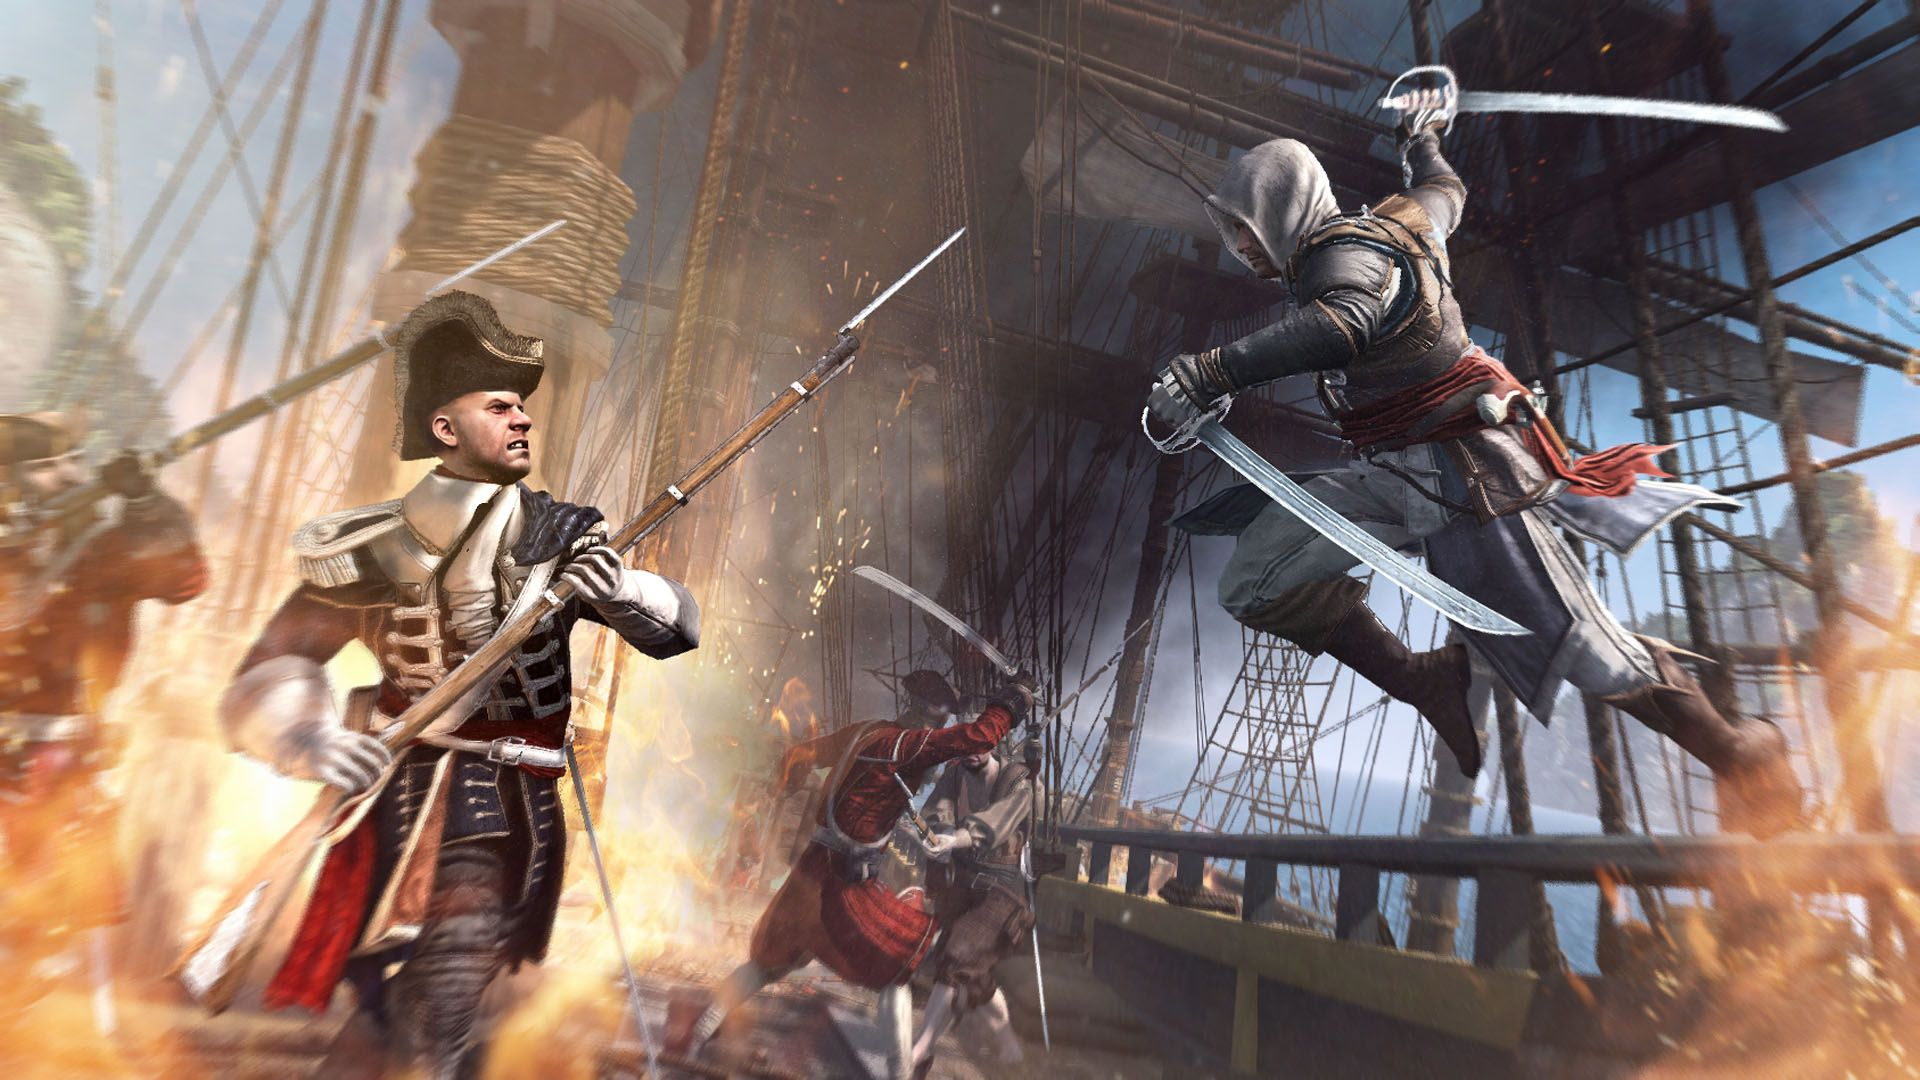 Assassins creed iv black flag hd wallpapers this wallpaper assassins creed iv black flag hd wallpapers this wallpaper voltagebd Image collections